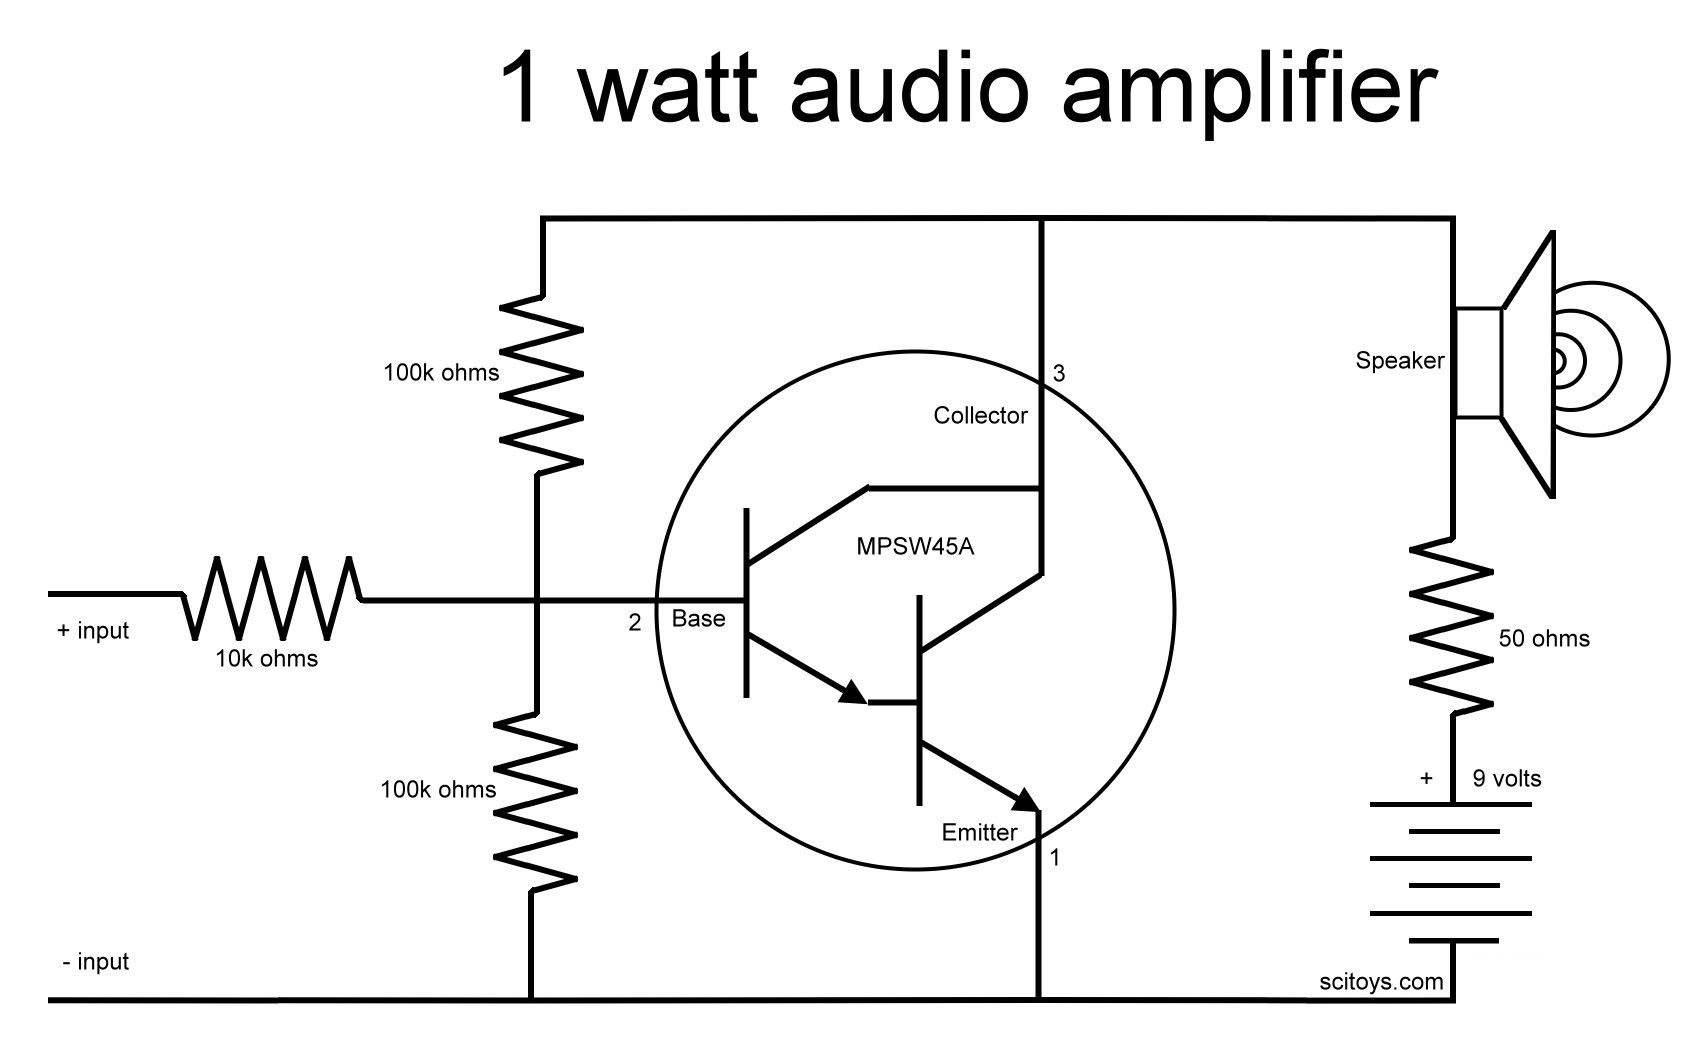 small transistor amplifier ideals